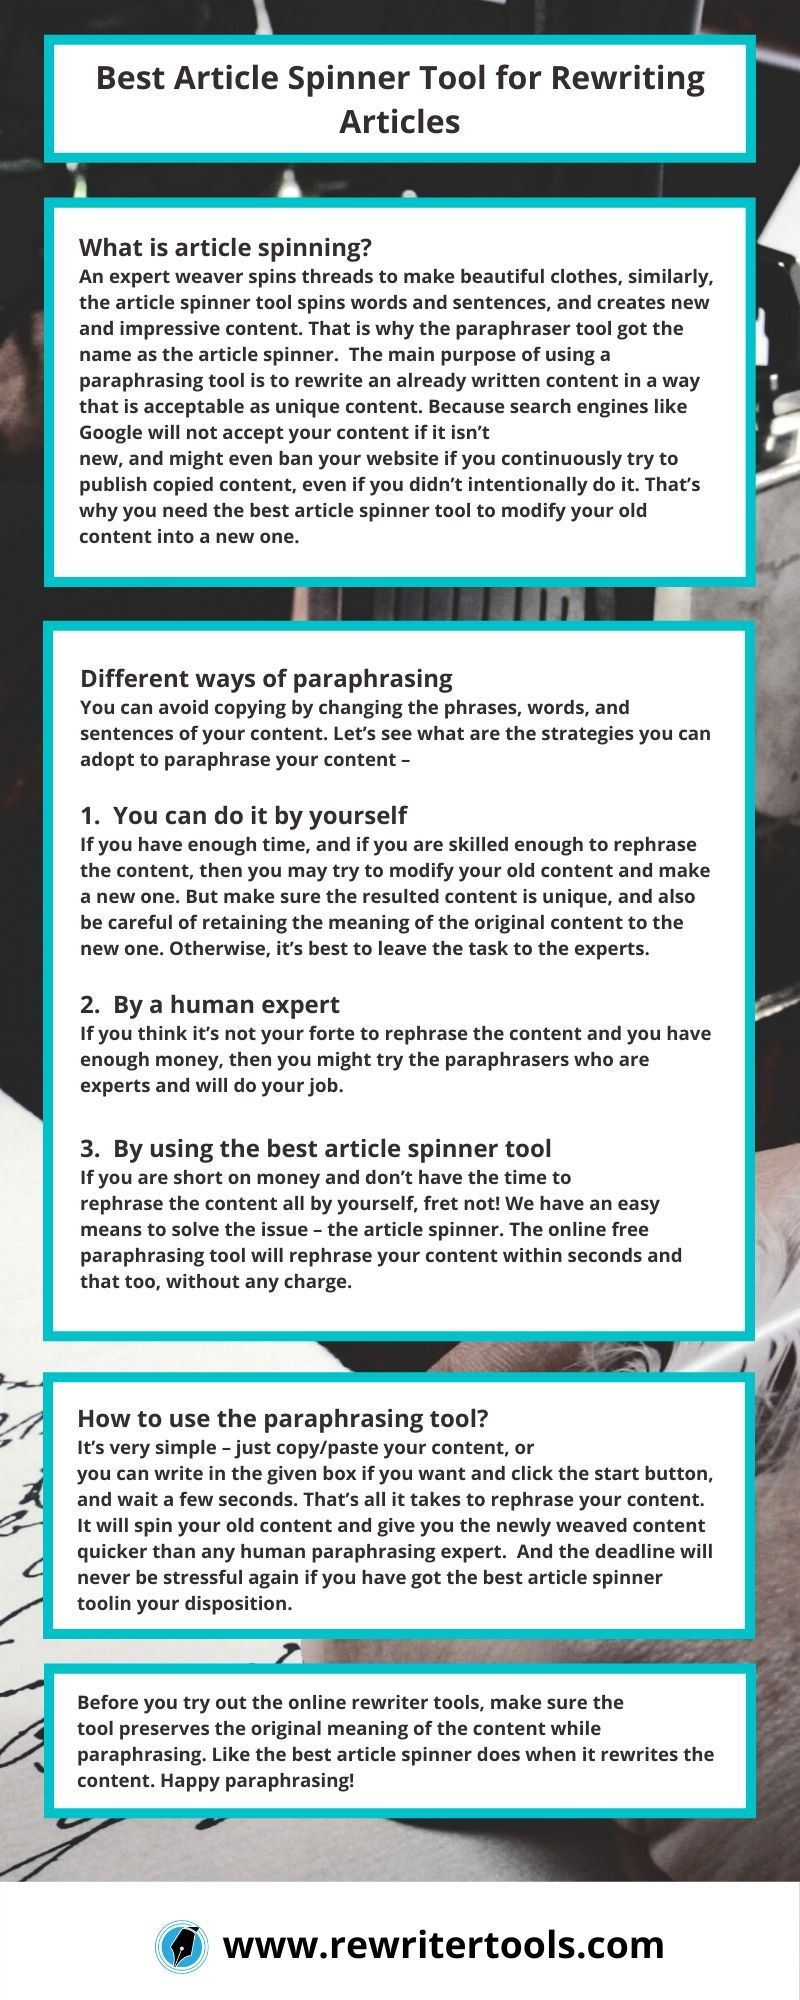 Best Article Spinner Tool for Rewording Articles in 2020